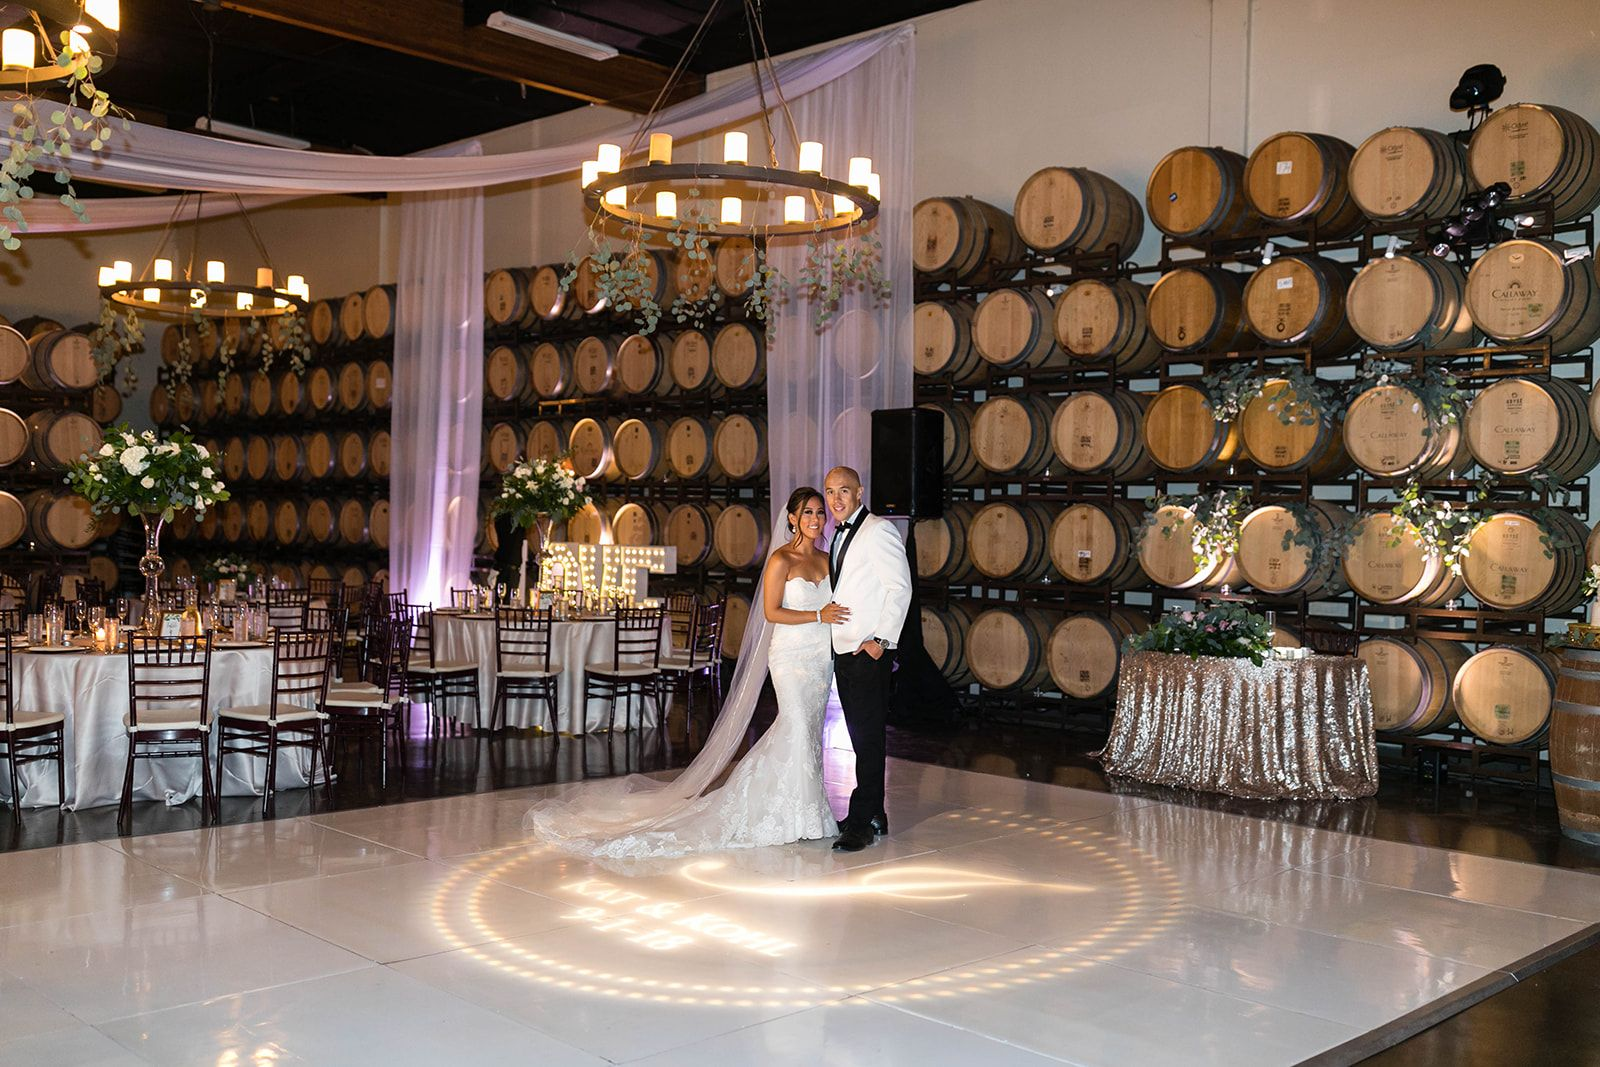 Reception Area Winery Wedding At Callaway Winery In Temecula